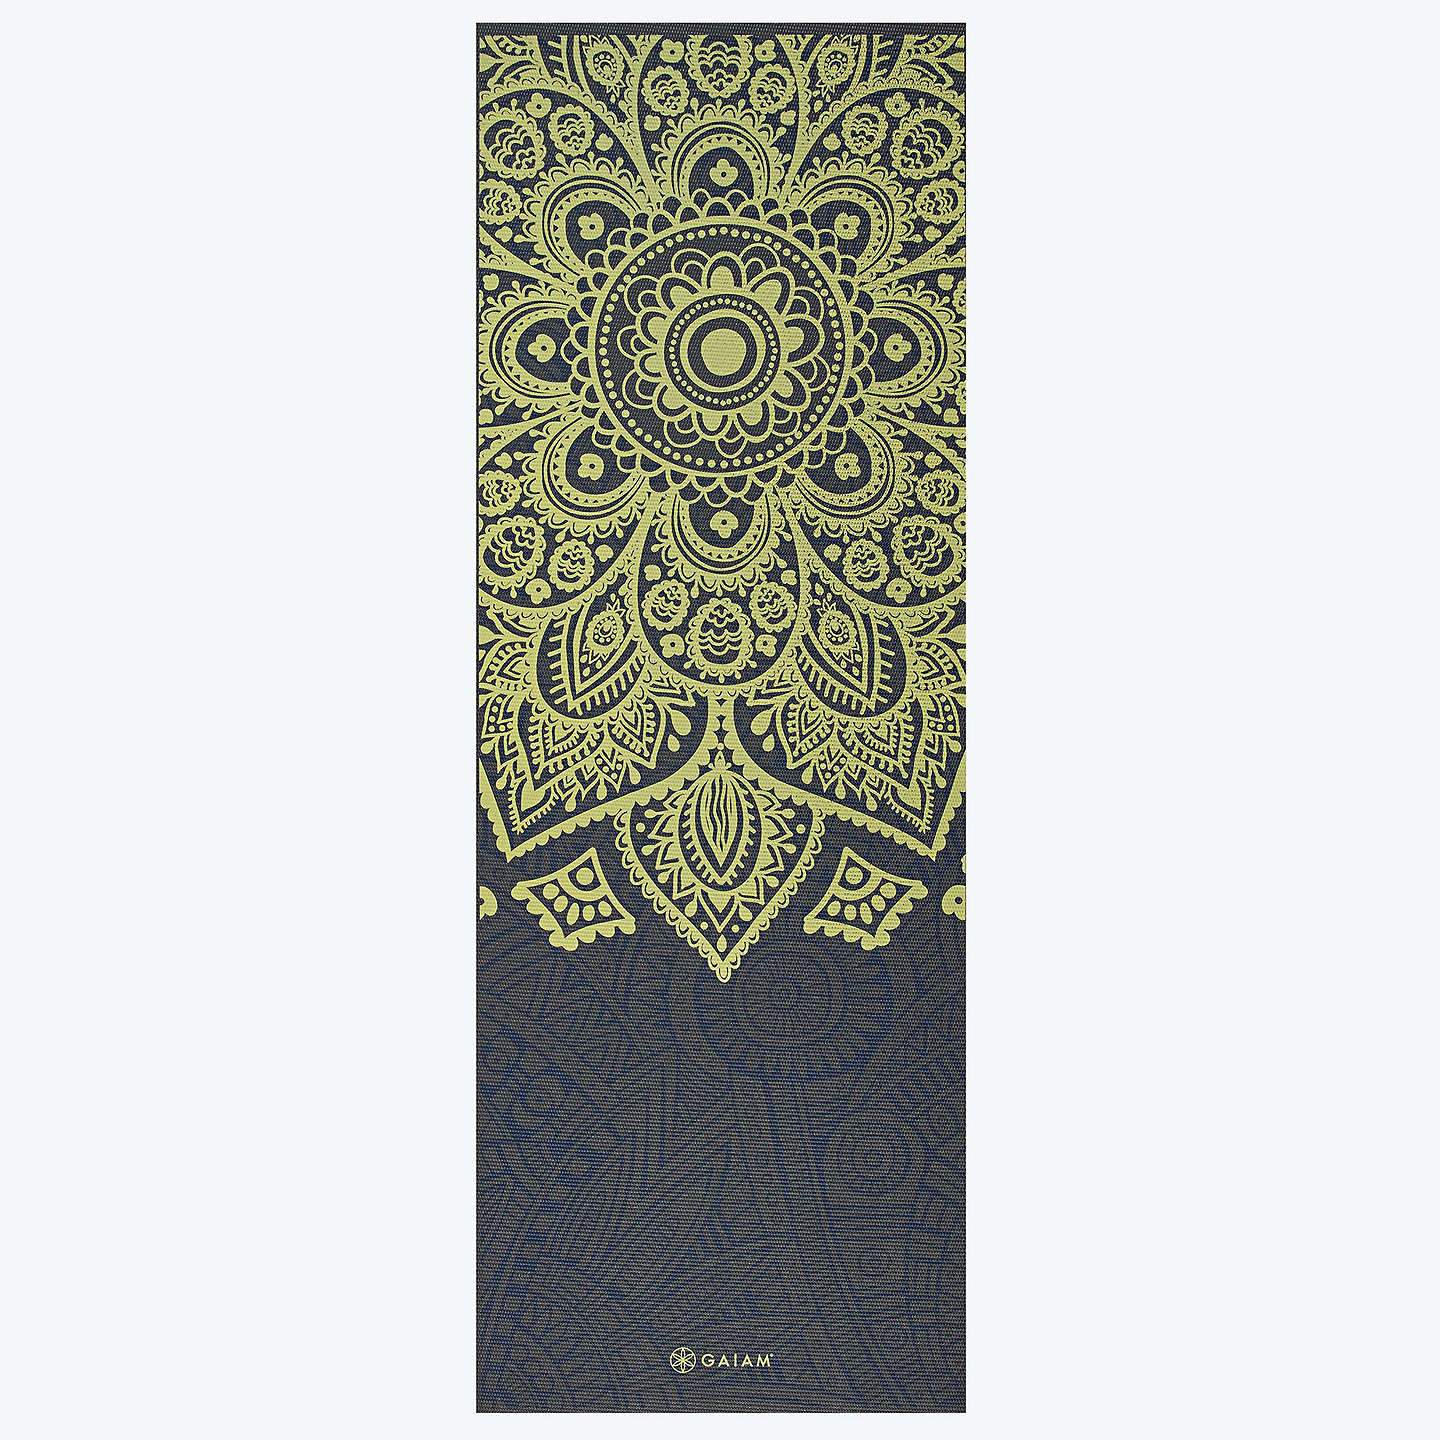 BuyGaiam Keep Your Cool Yoga Premium 6mm Mat and Bottle Set, Multi Online at johnlewis.com